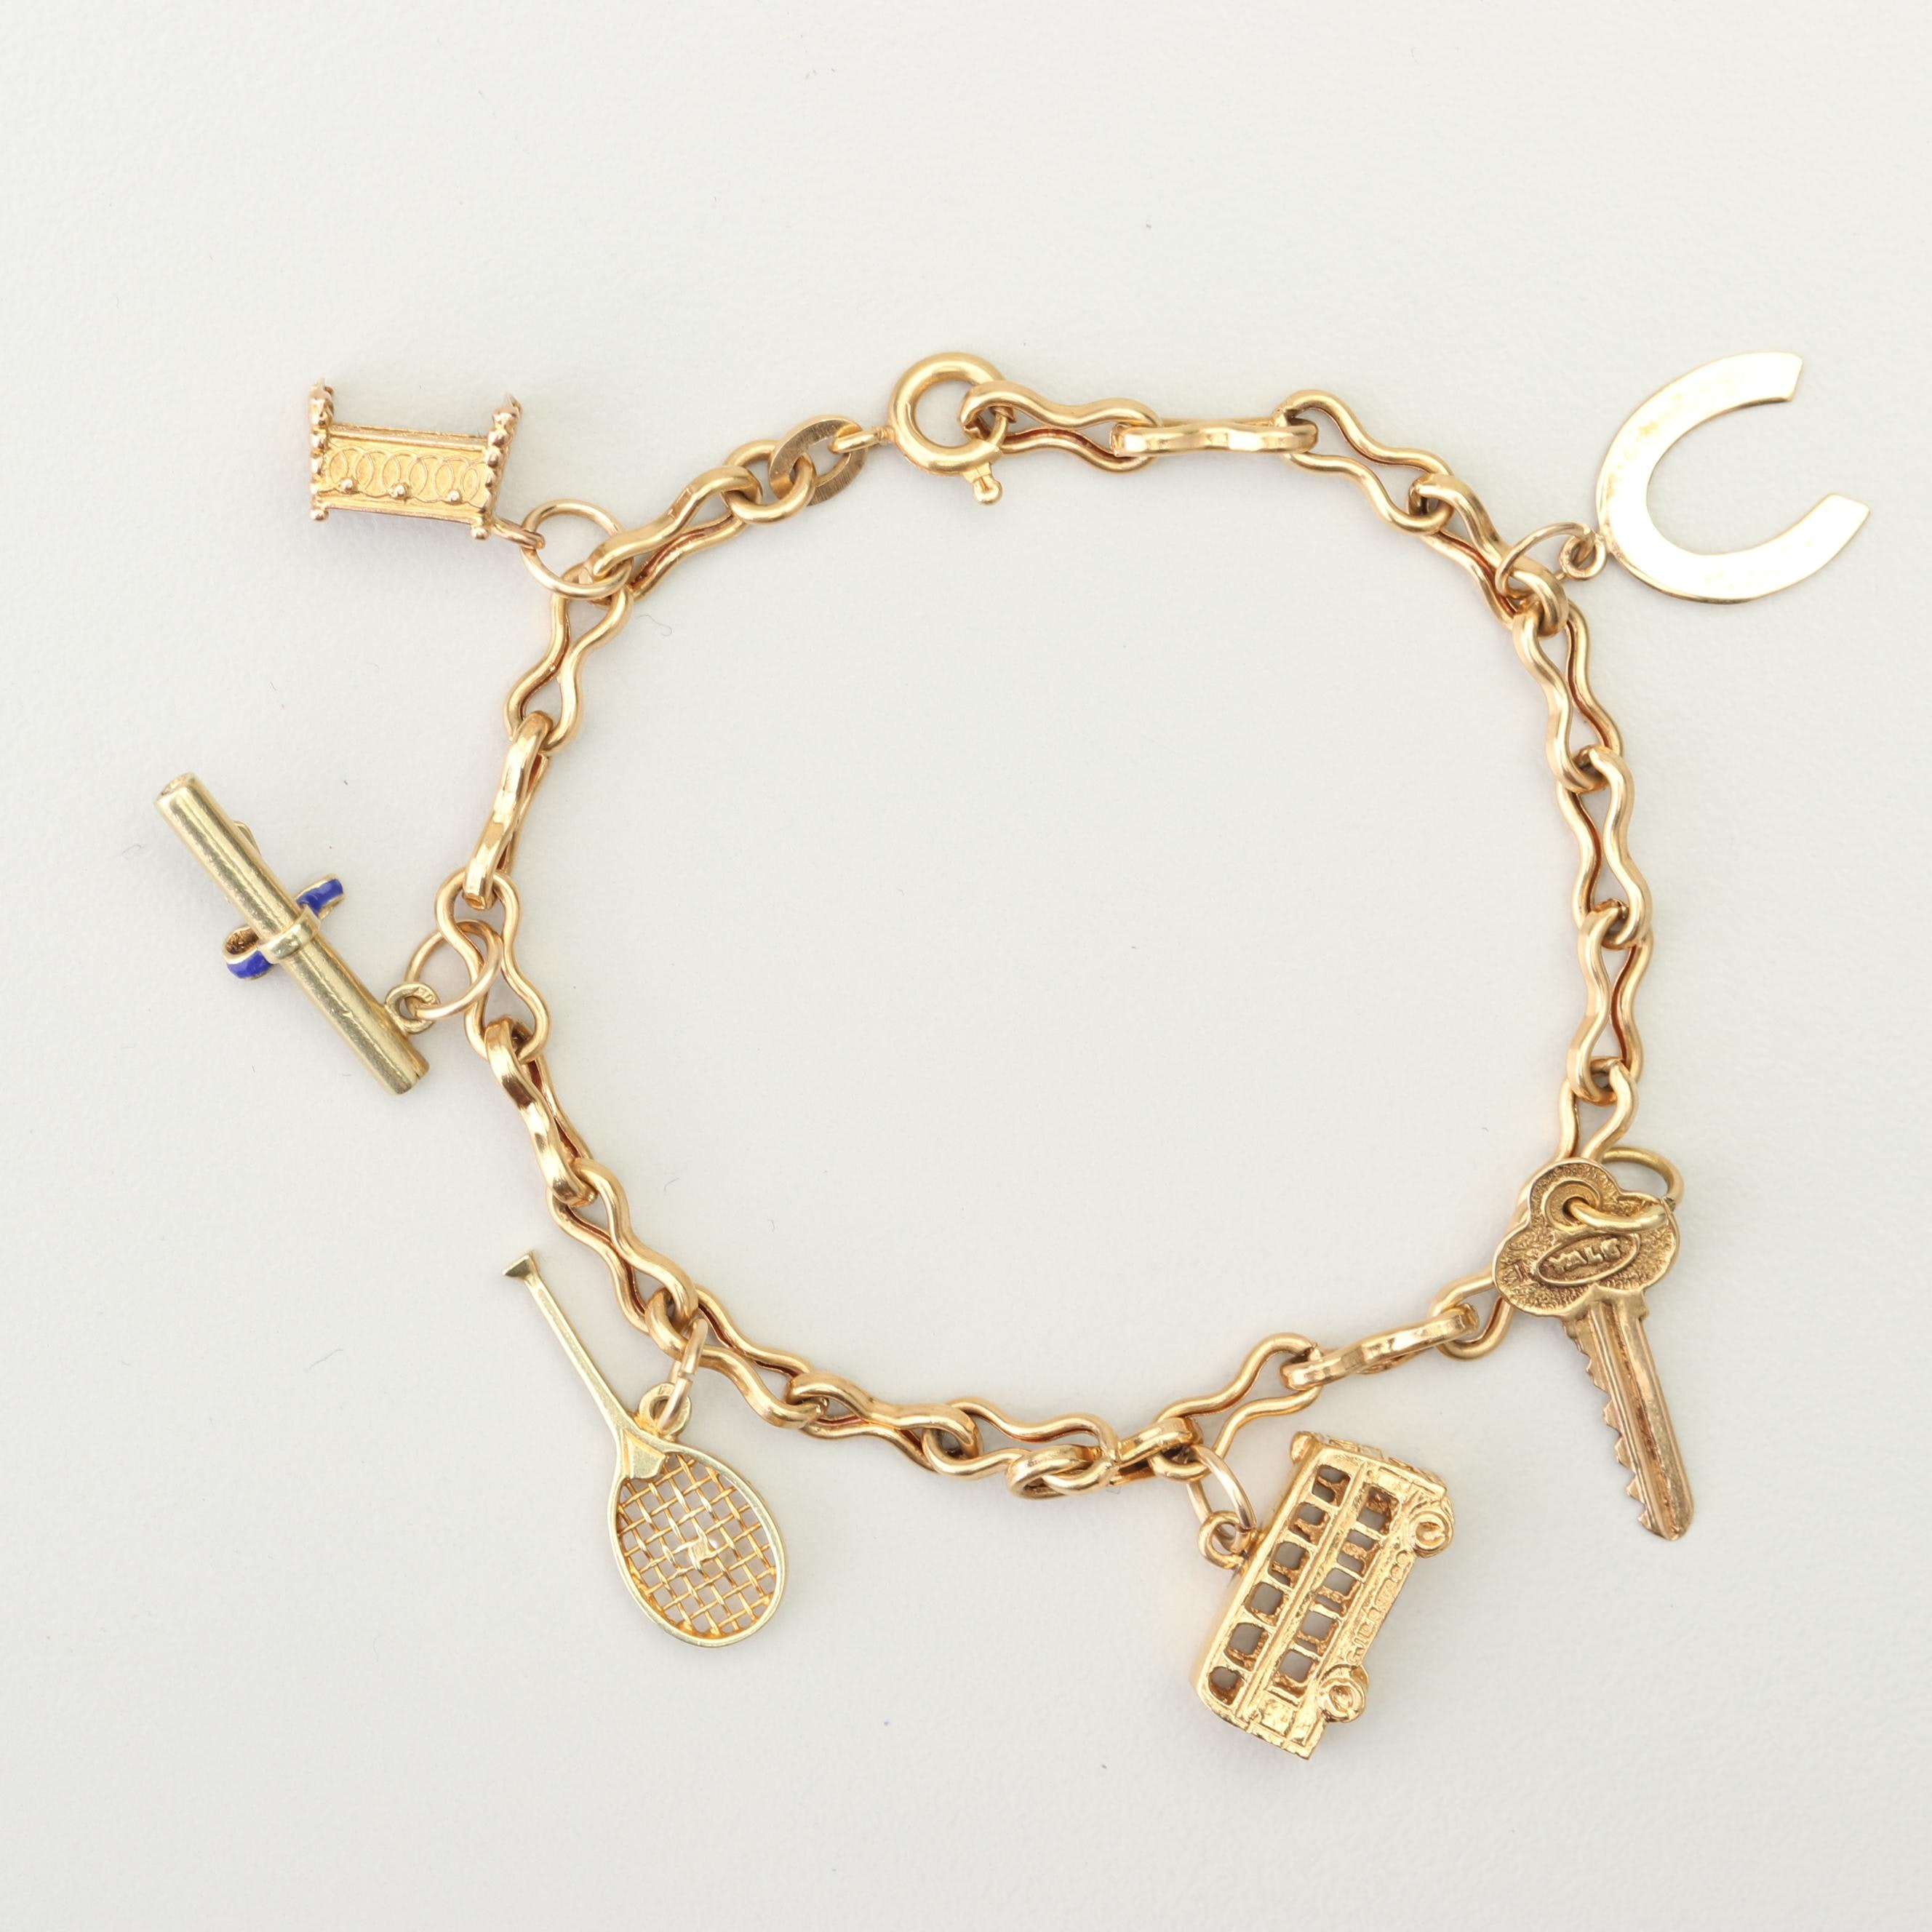 18K Yellow Gold Charm Bracelet with 14K and 10K Yellow Gold Charms